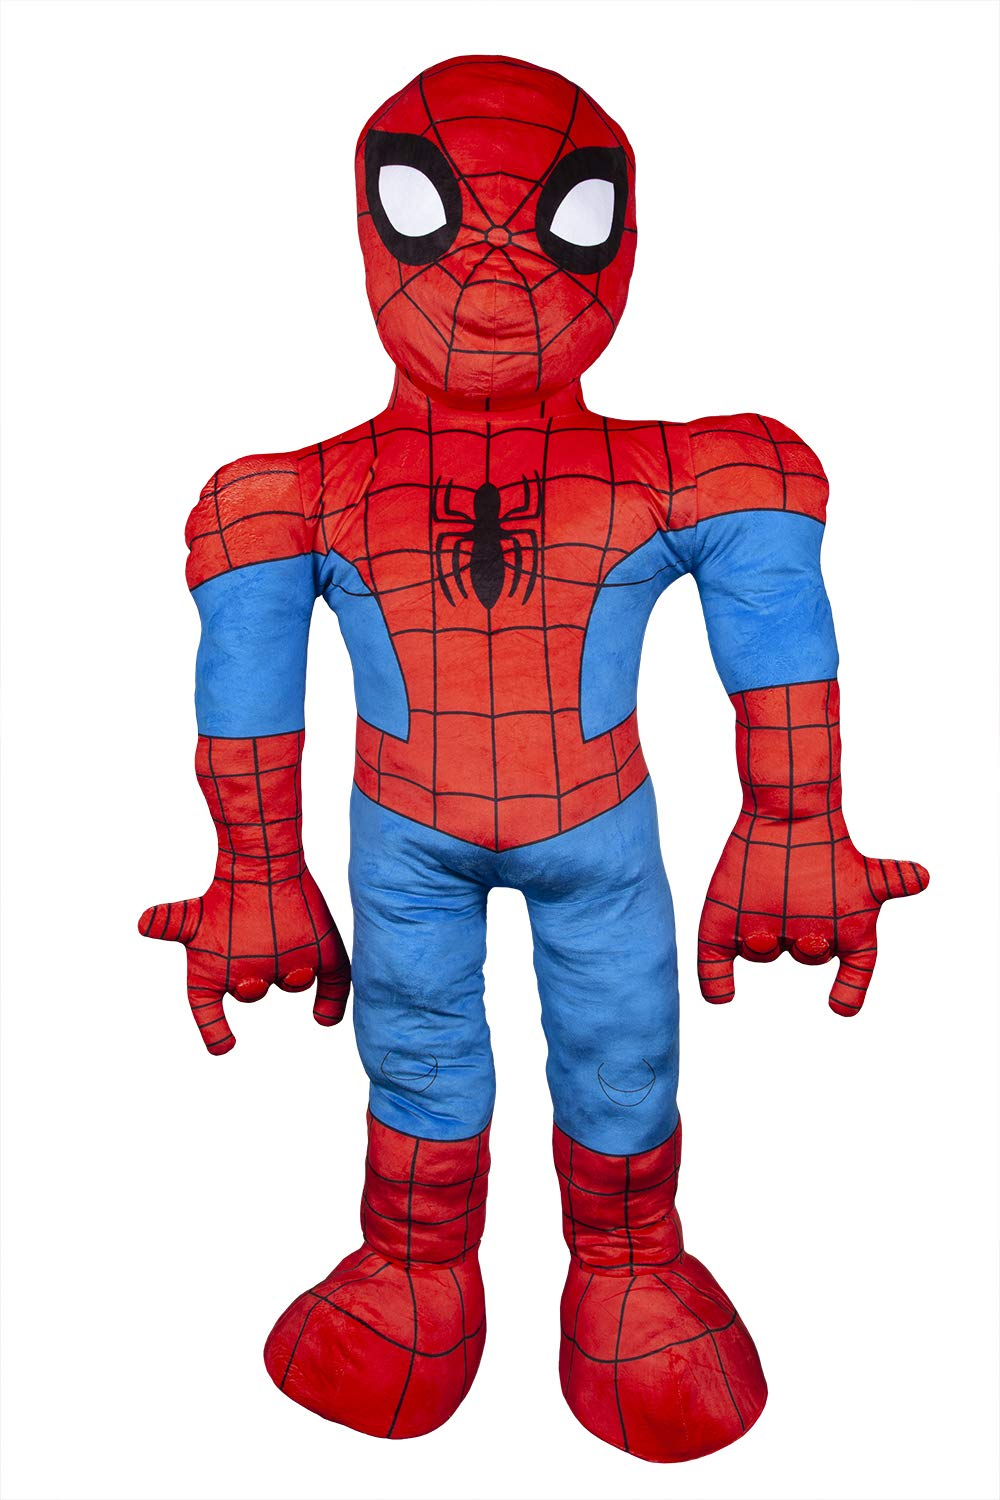 World Tech Toys Spider-Man Marvel Licensed 5FT Plush by World Tech Toys